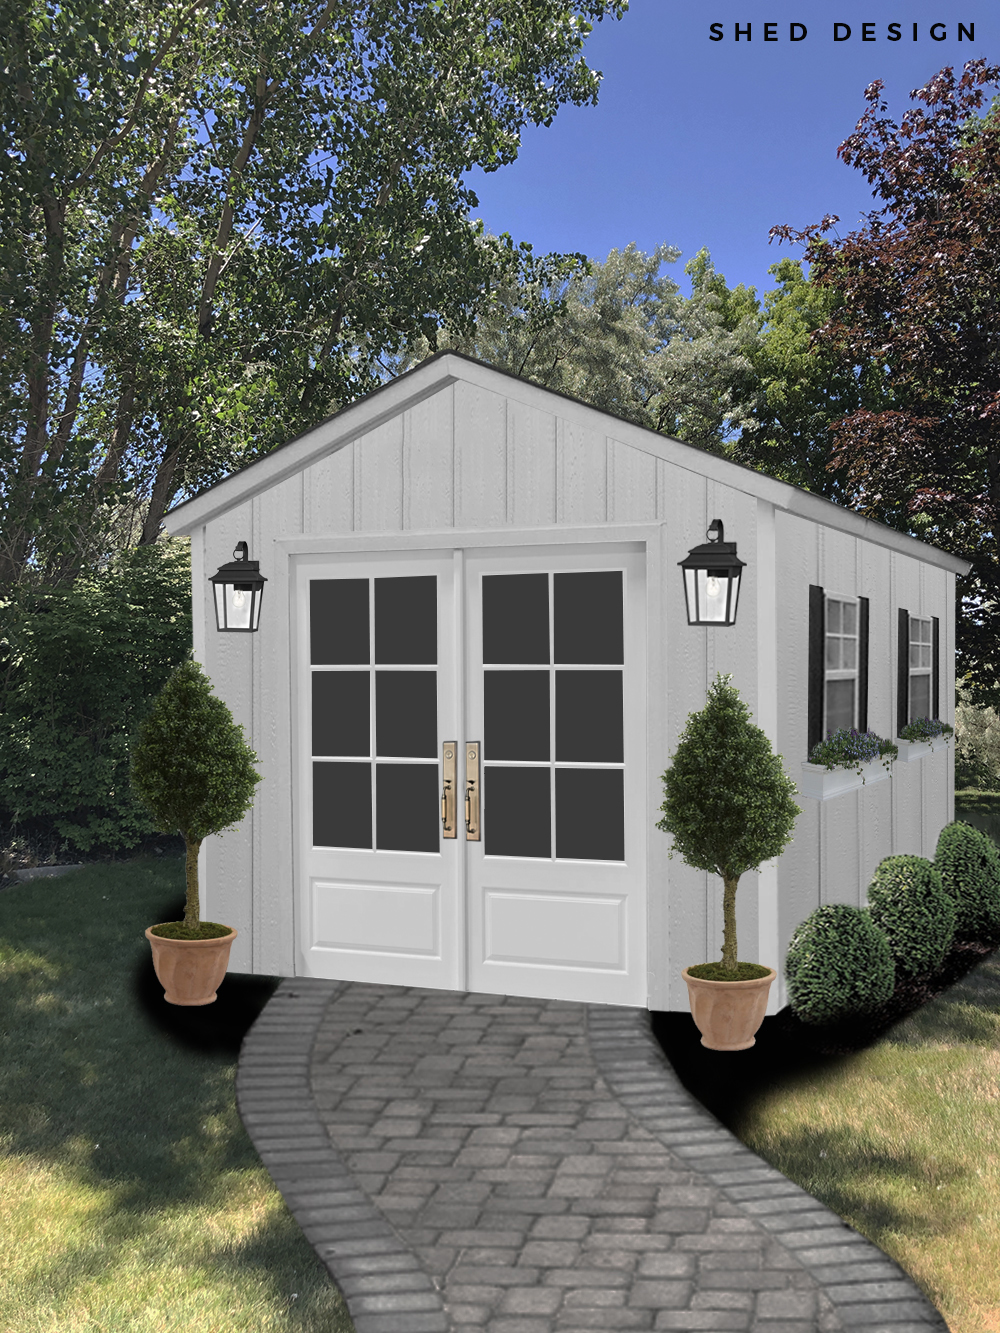 Designing Our Shed (+ Some Readymade Options)